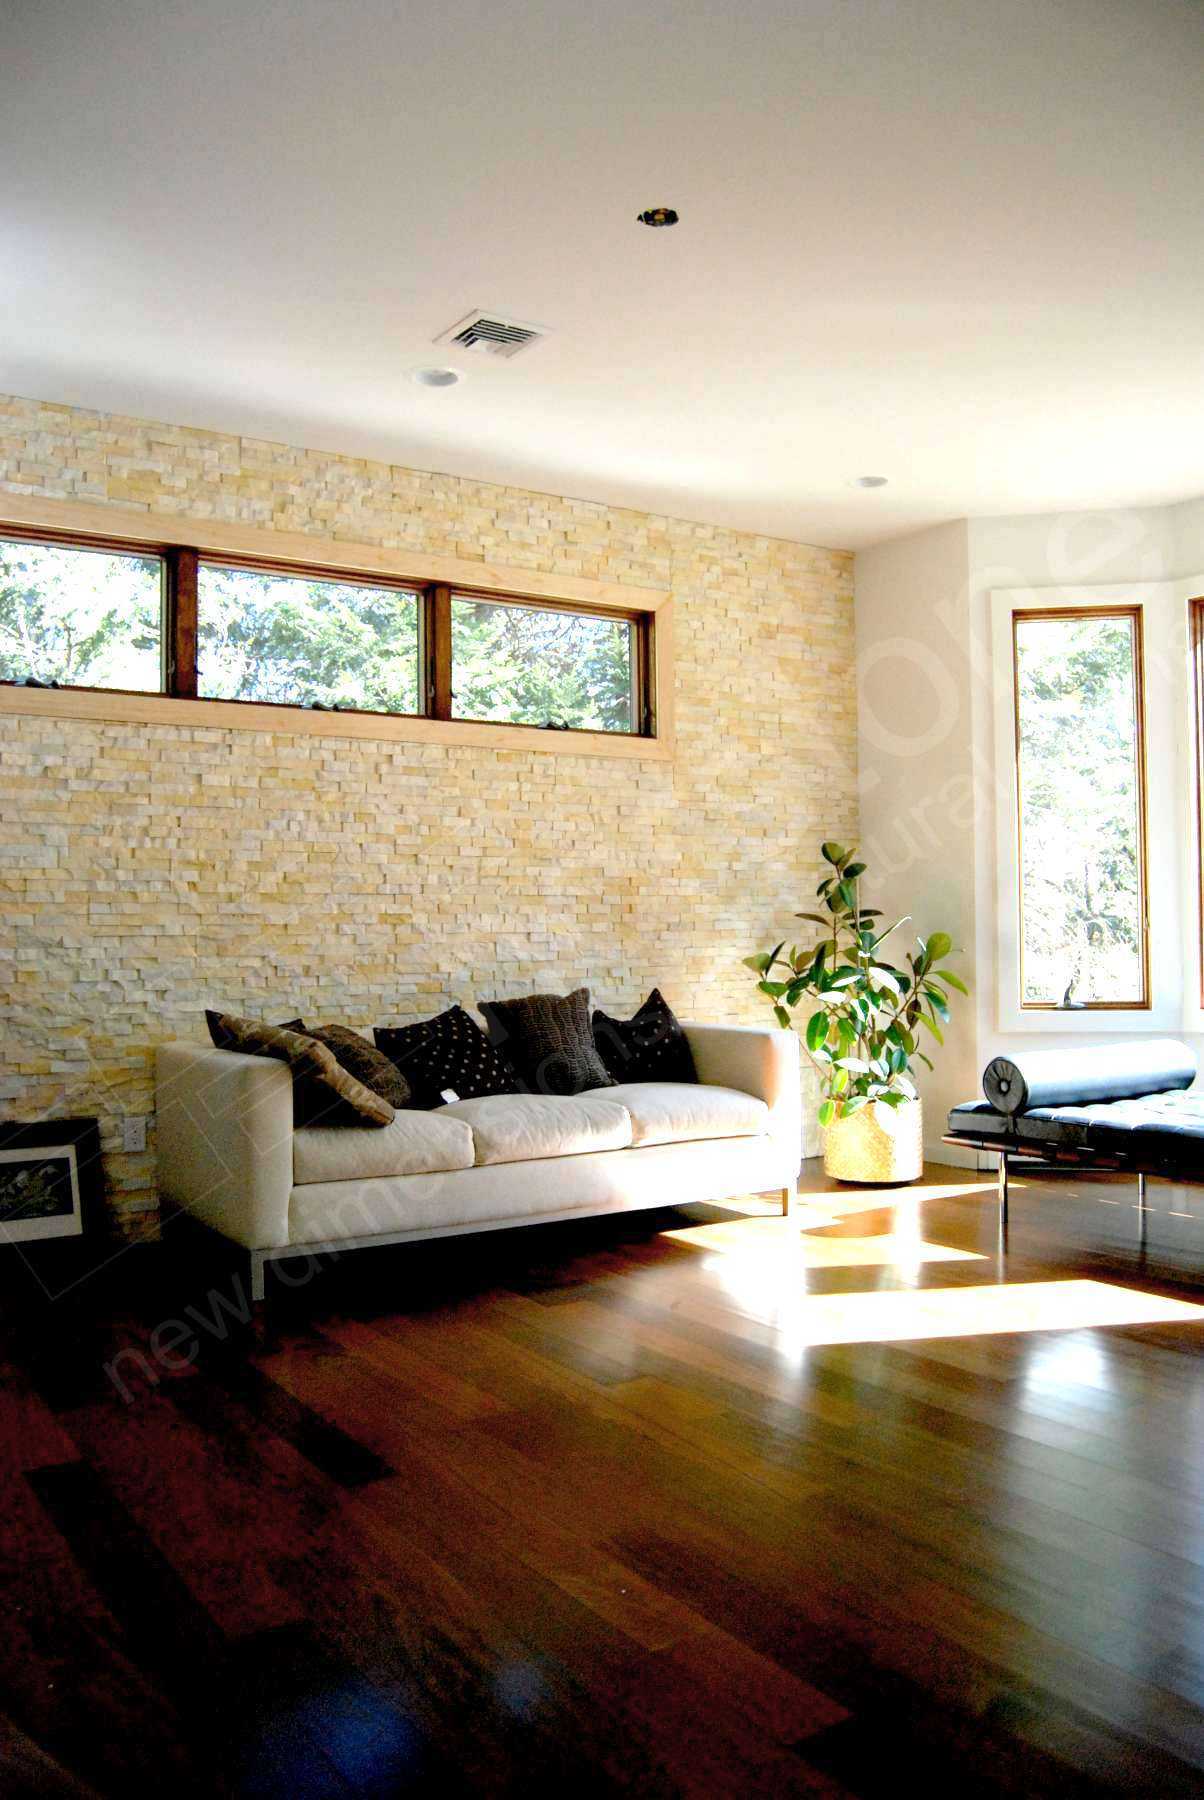 Natural Stone Feature Wall of Norstone Ivory Rock Panels with low slung couch and large window in a suburban NJ home for improved Indoor Air Quality